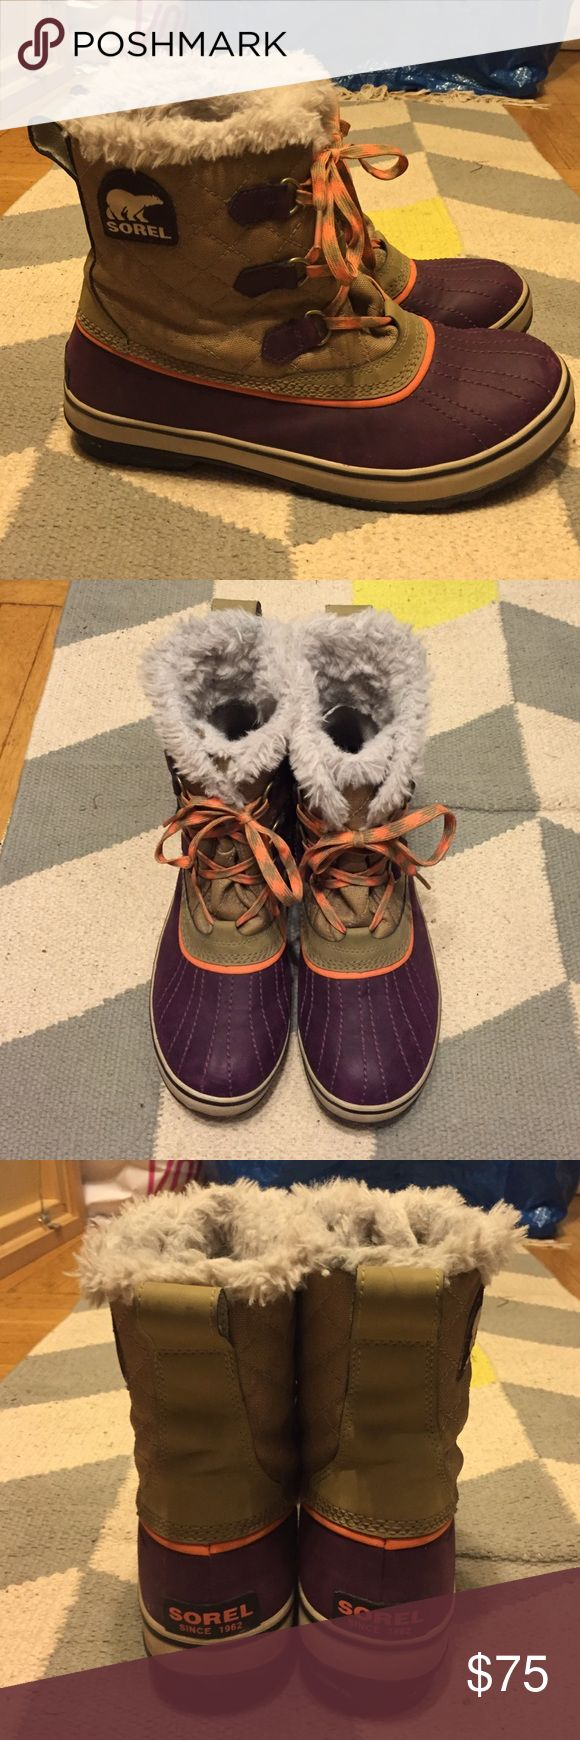 Sorel winter boots Excellent condition. Lined waterproof boots. Made for cold, snow and ice, cute purple soles with orange accents. Sorel Shoes Winter & Rain Boots